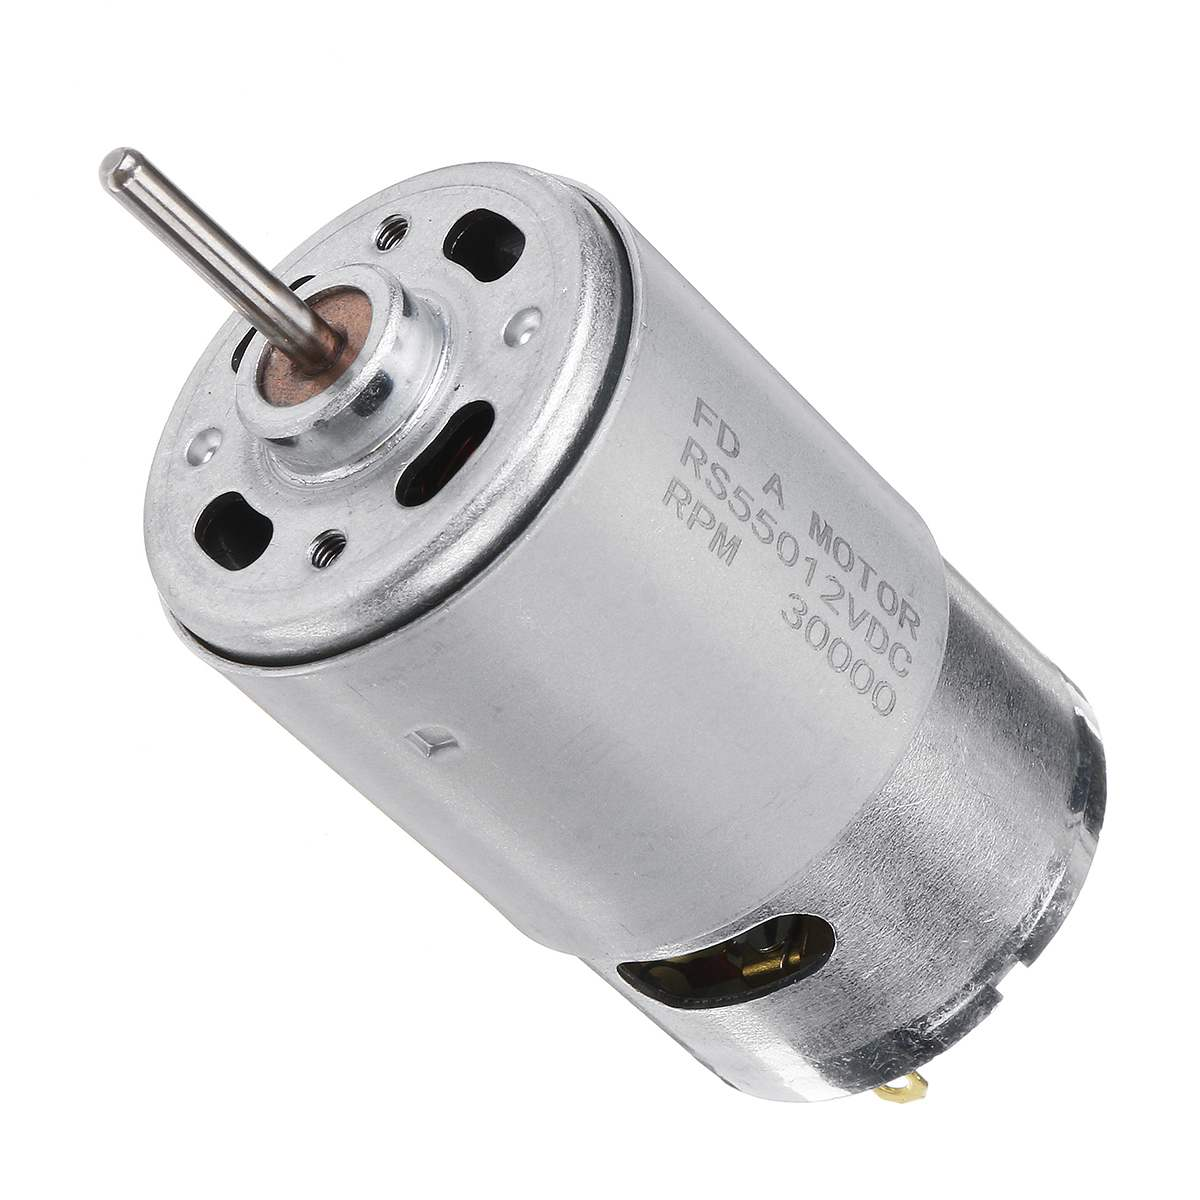 12V Electric Motor Gear Box For Kids Ride On Car Bike Toy Spare Parts 30000RPM